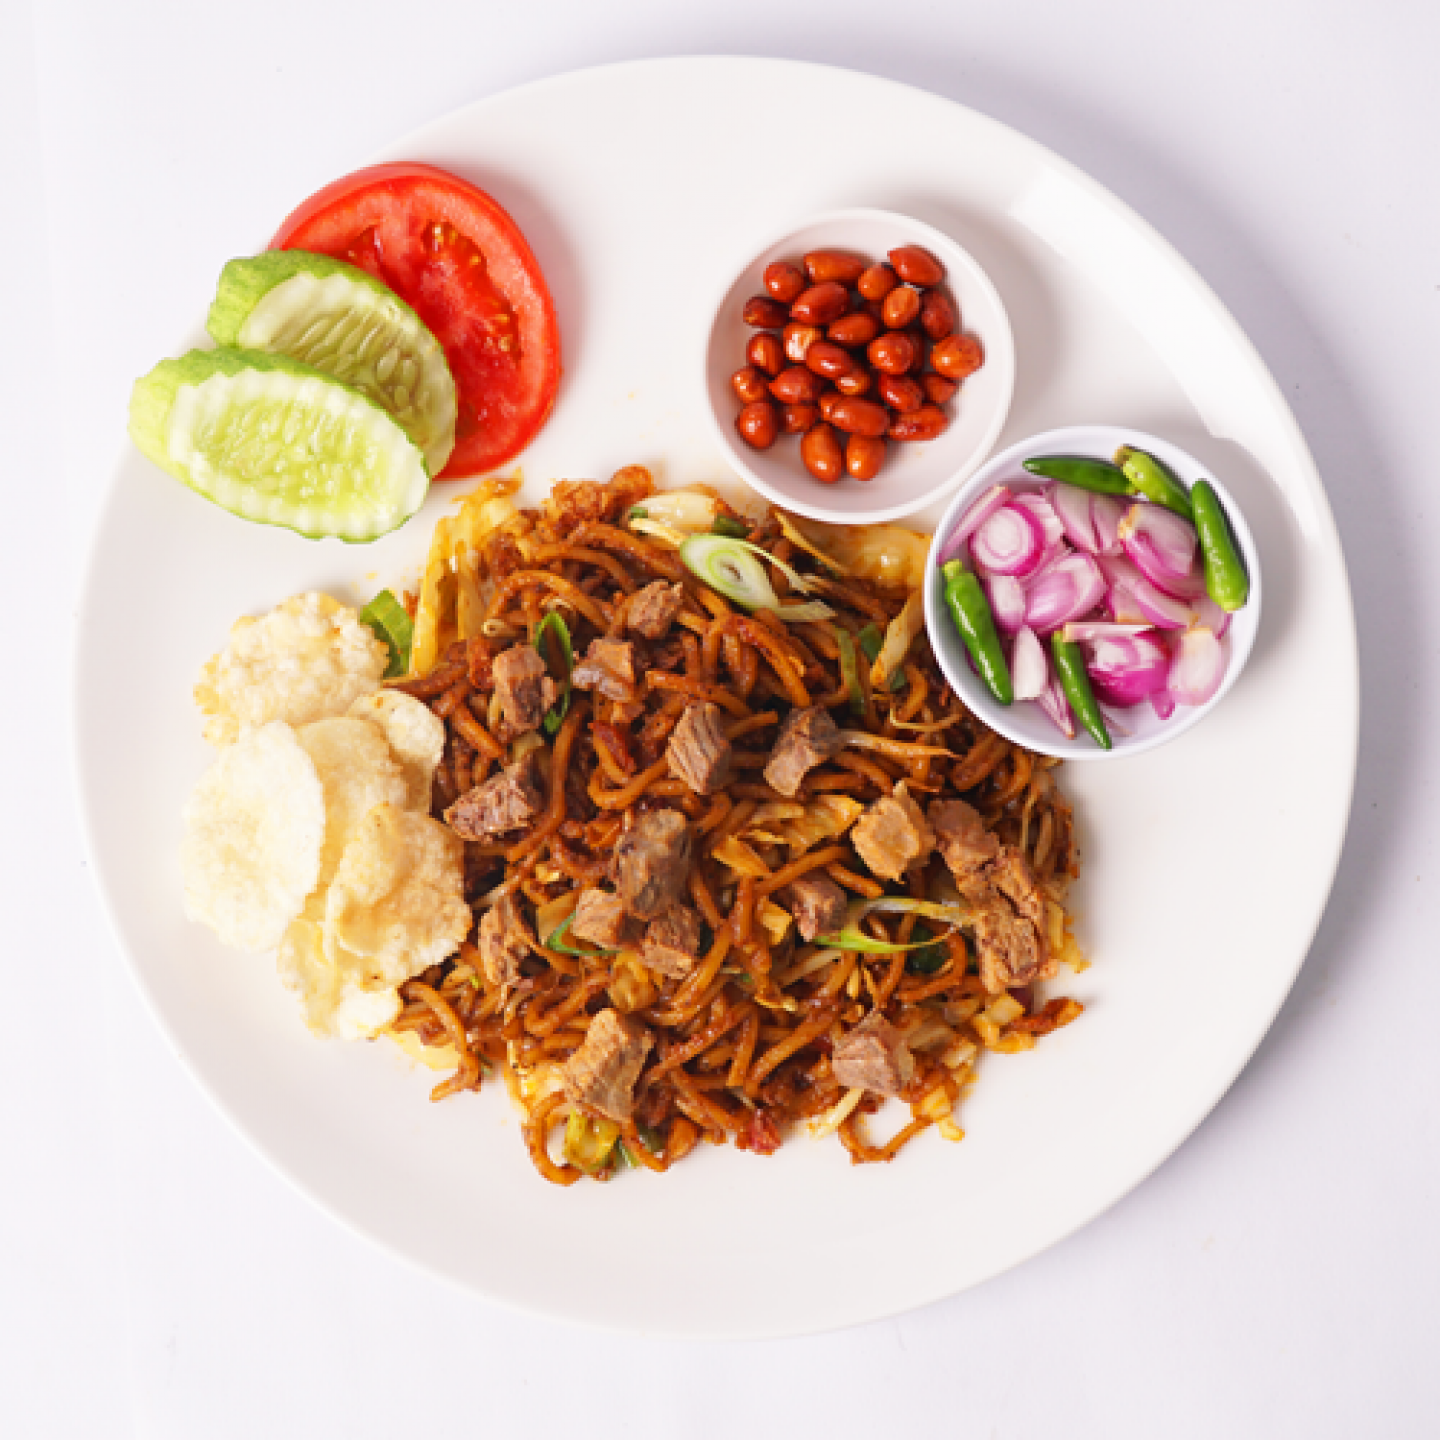 Food-Aceh-Mie-Goreng-Daging-DSC00618(1)